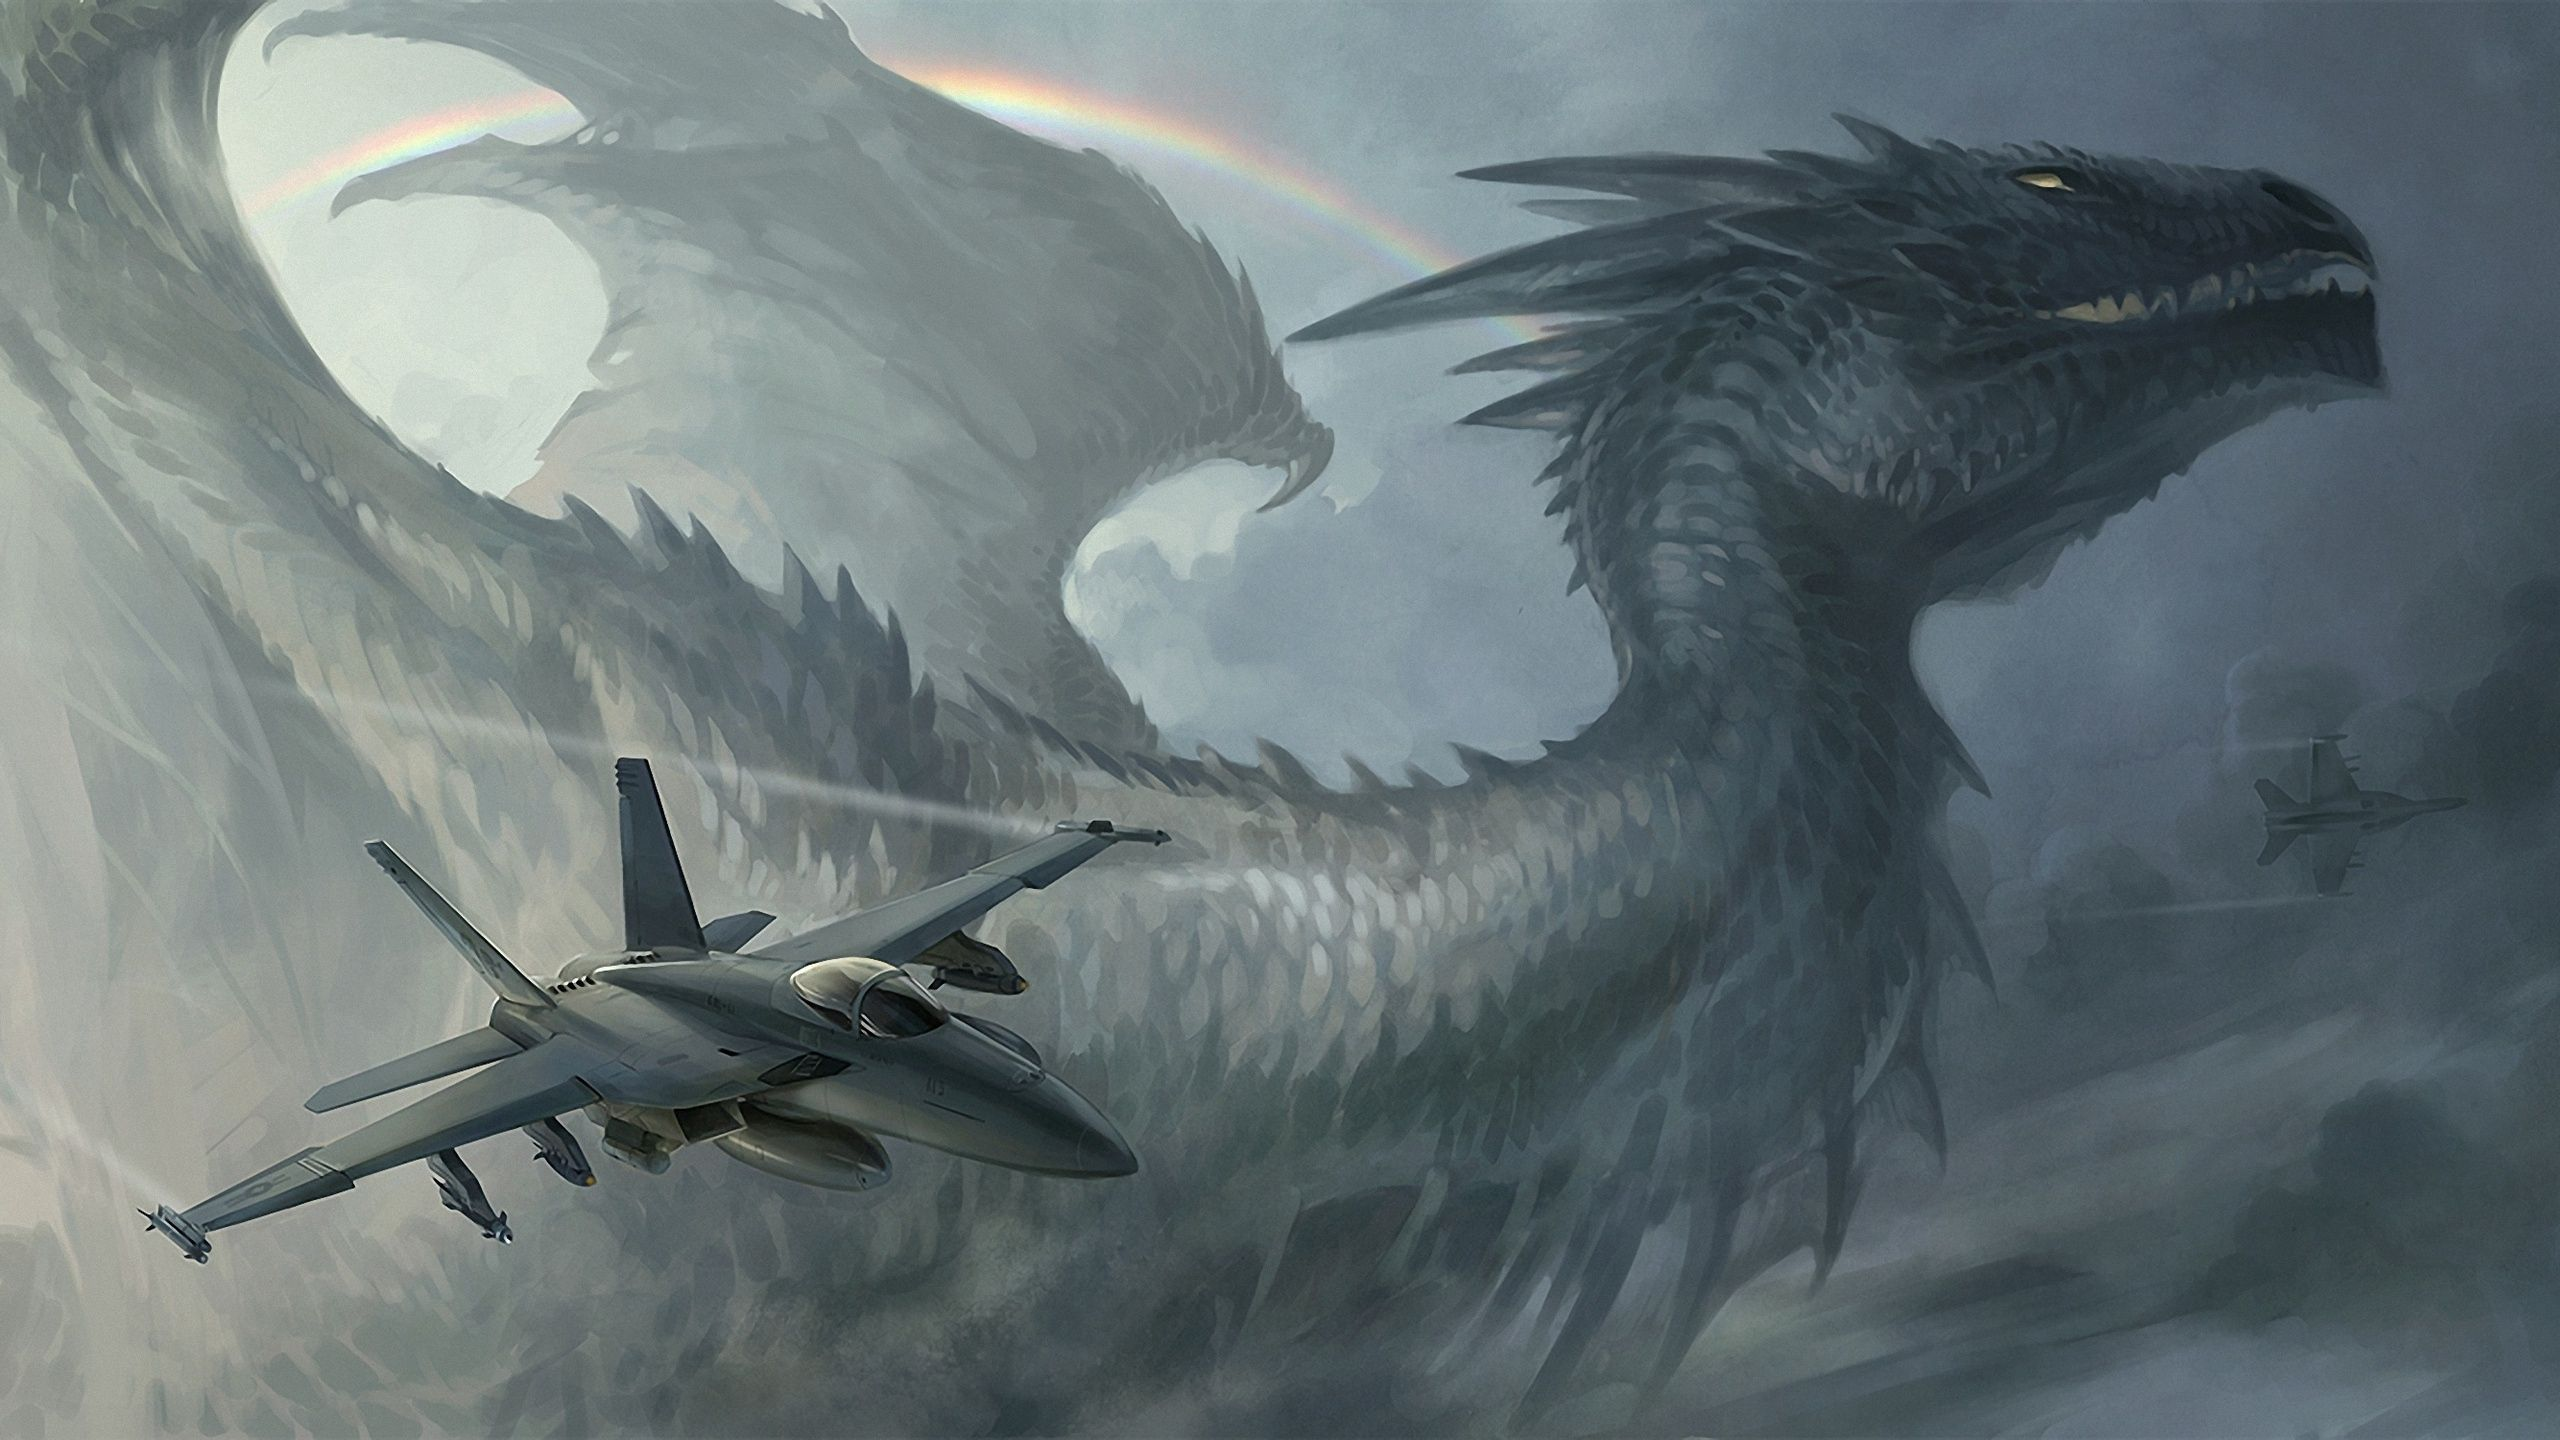 86243 download wallpaper Fantasy, Sky, Rainbow, Dragon, Plane, Airplane, Rocket, Rockets screensavers and pictures for free